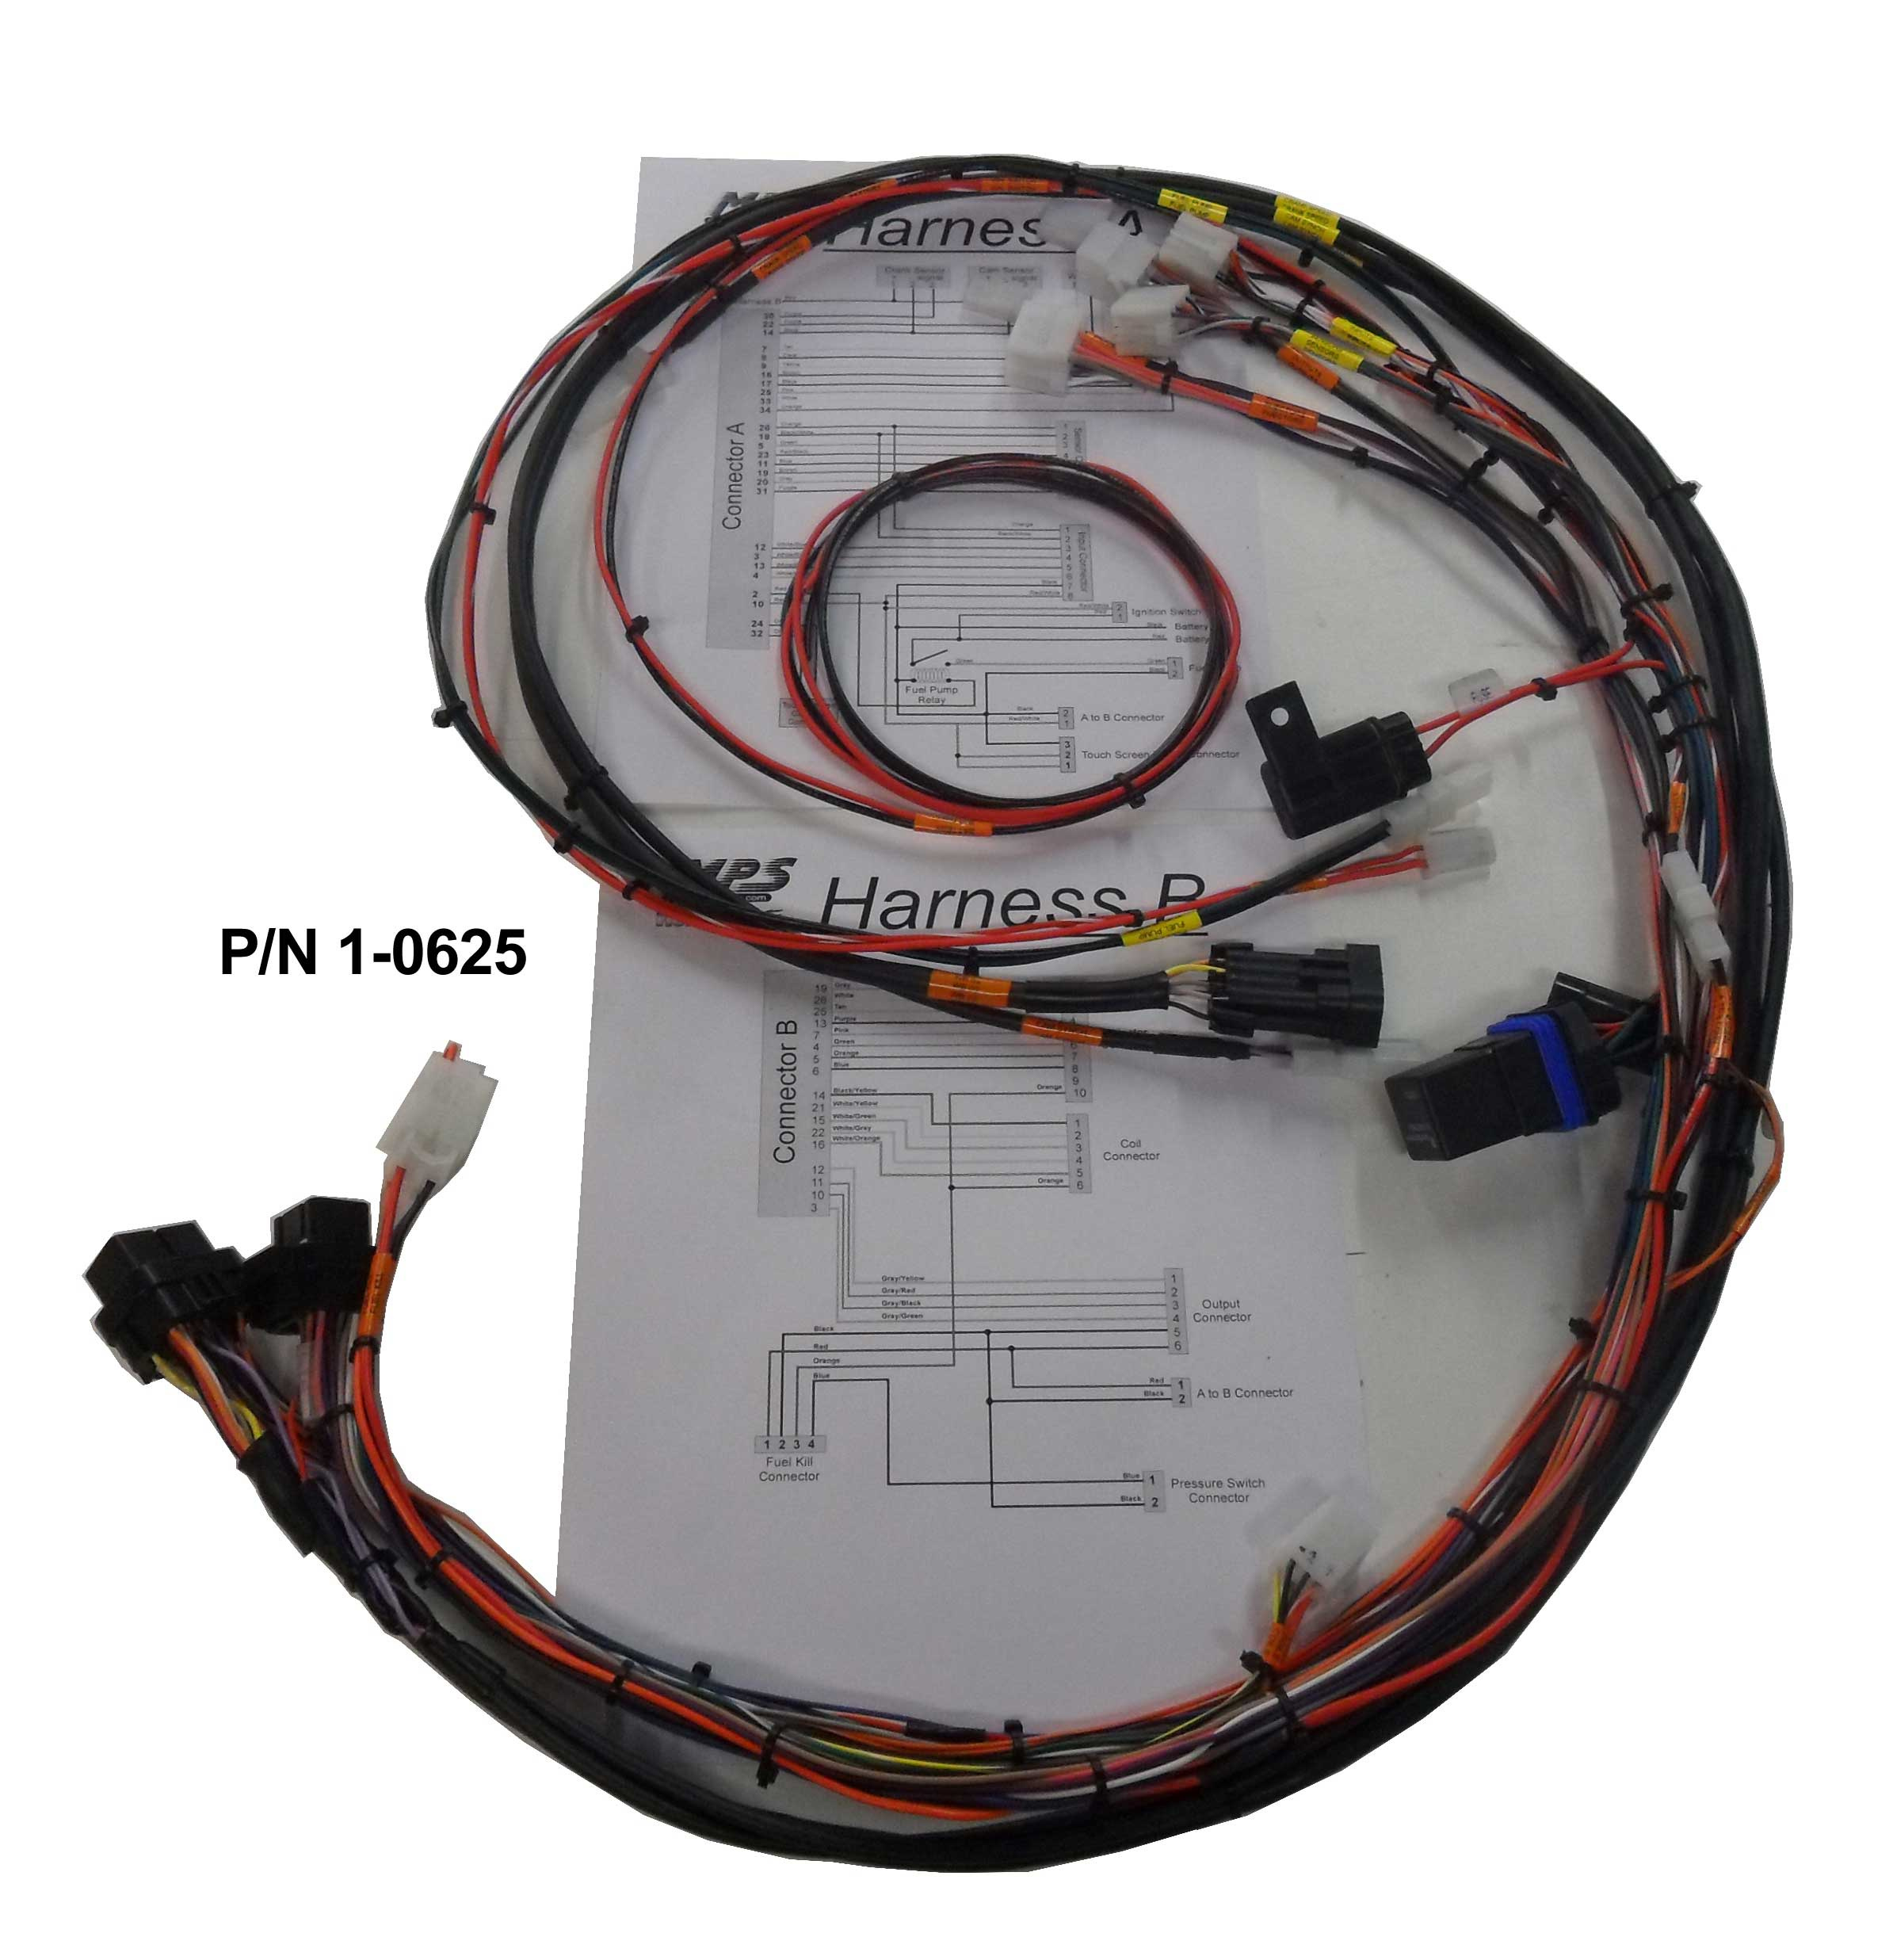 07 hayabusa wiring diagram perkins 12v alternator race harness | get free image about